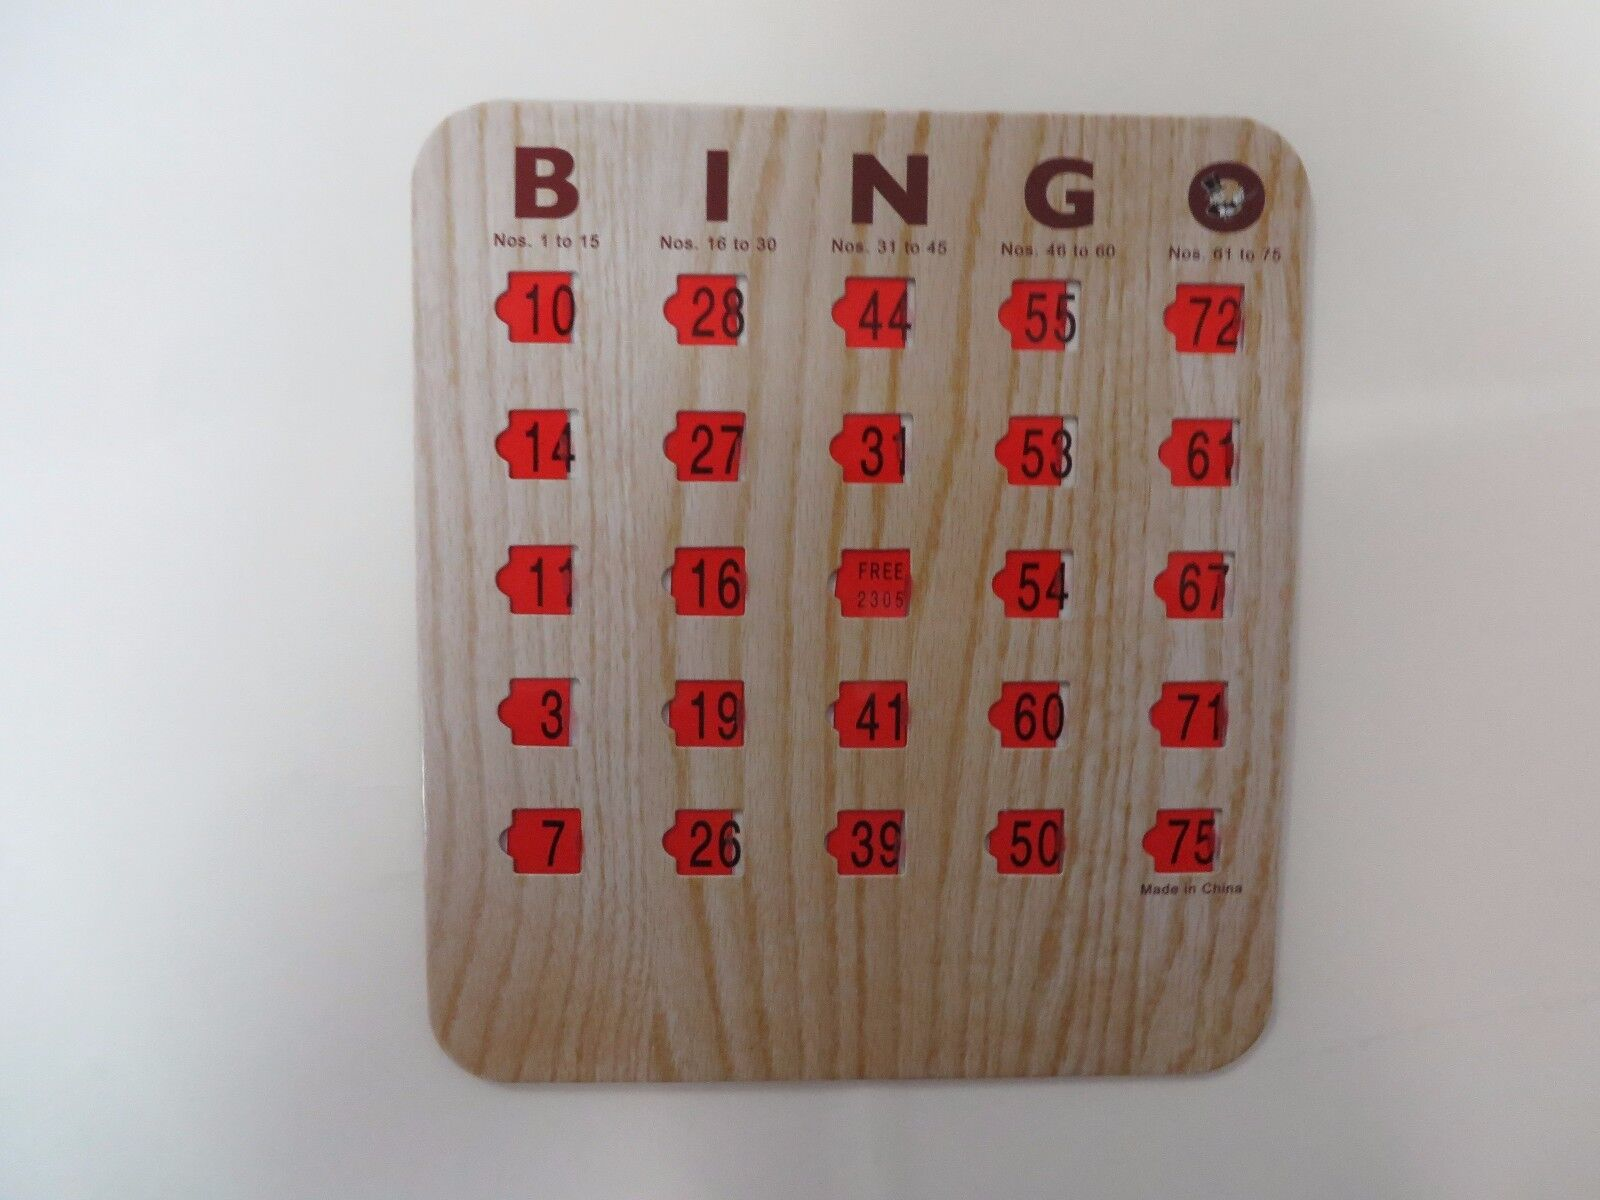 100 New New New Bingo Shutter Slide Cards -  Wood Grain - Deluxe 5 Ply - 745ff8